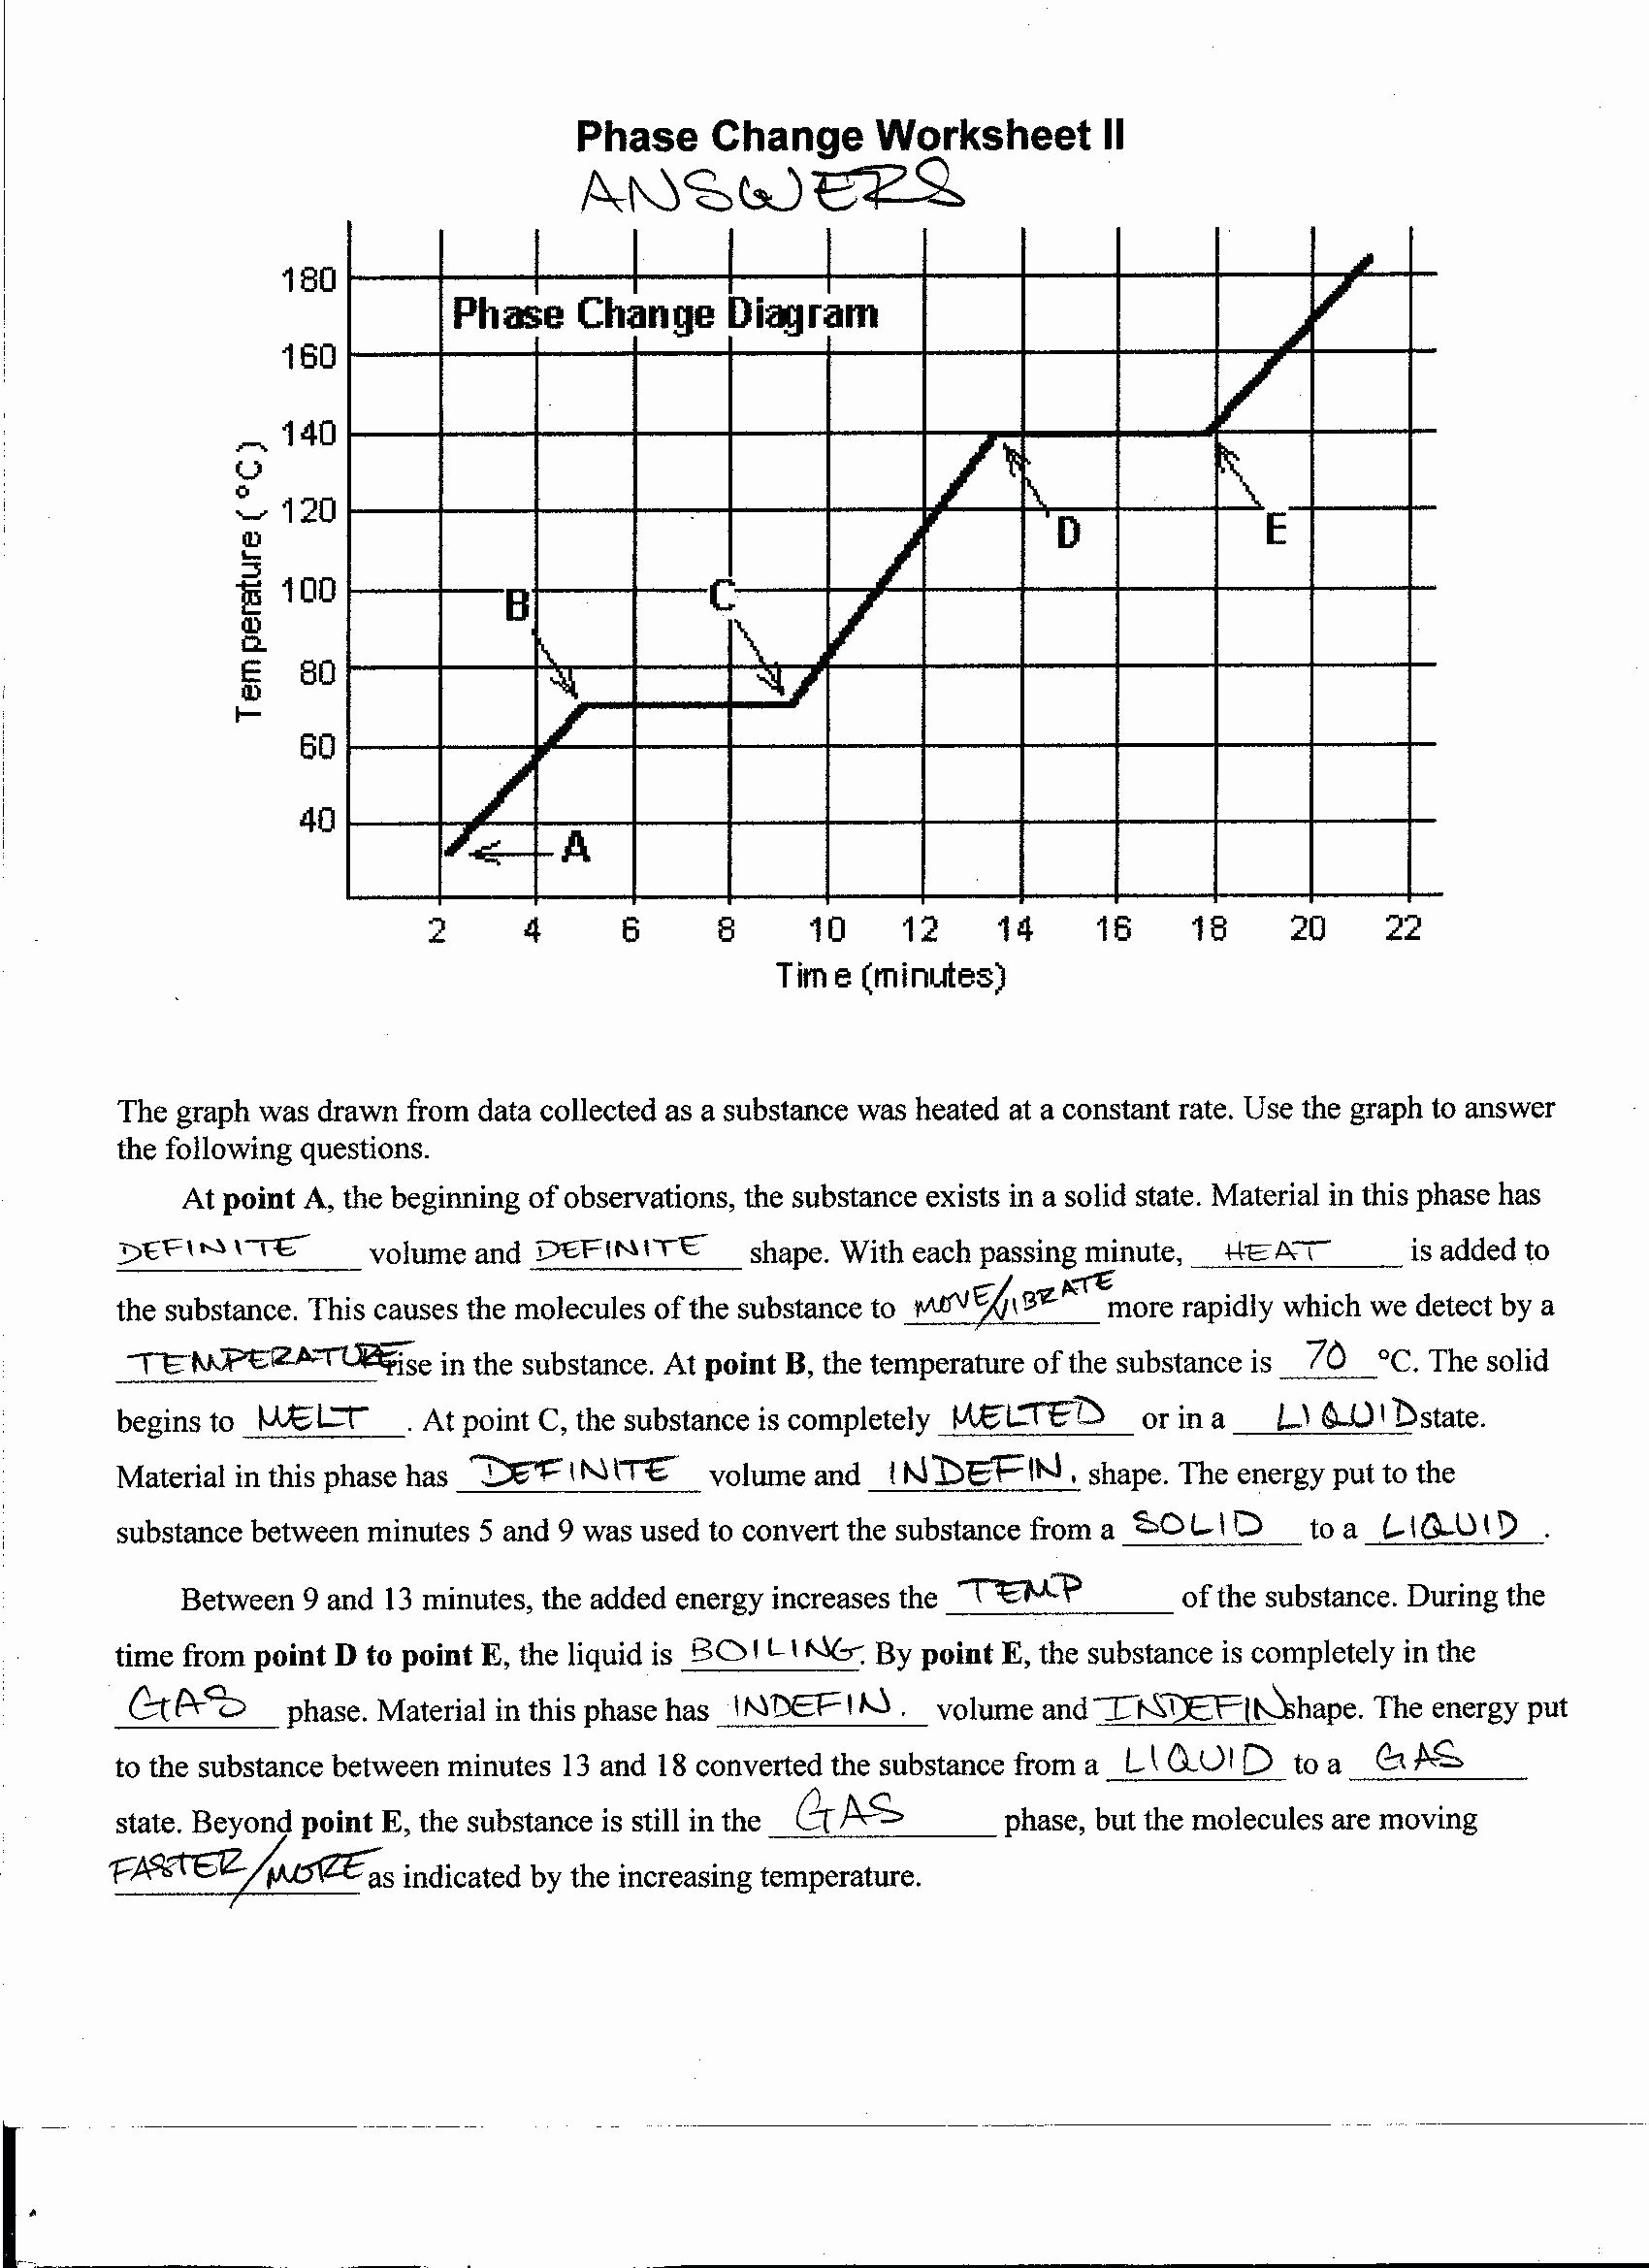 Phase Change Worksheet Answers Beautiful Phase Change Worksheet with Answers the Best Worksheets